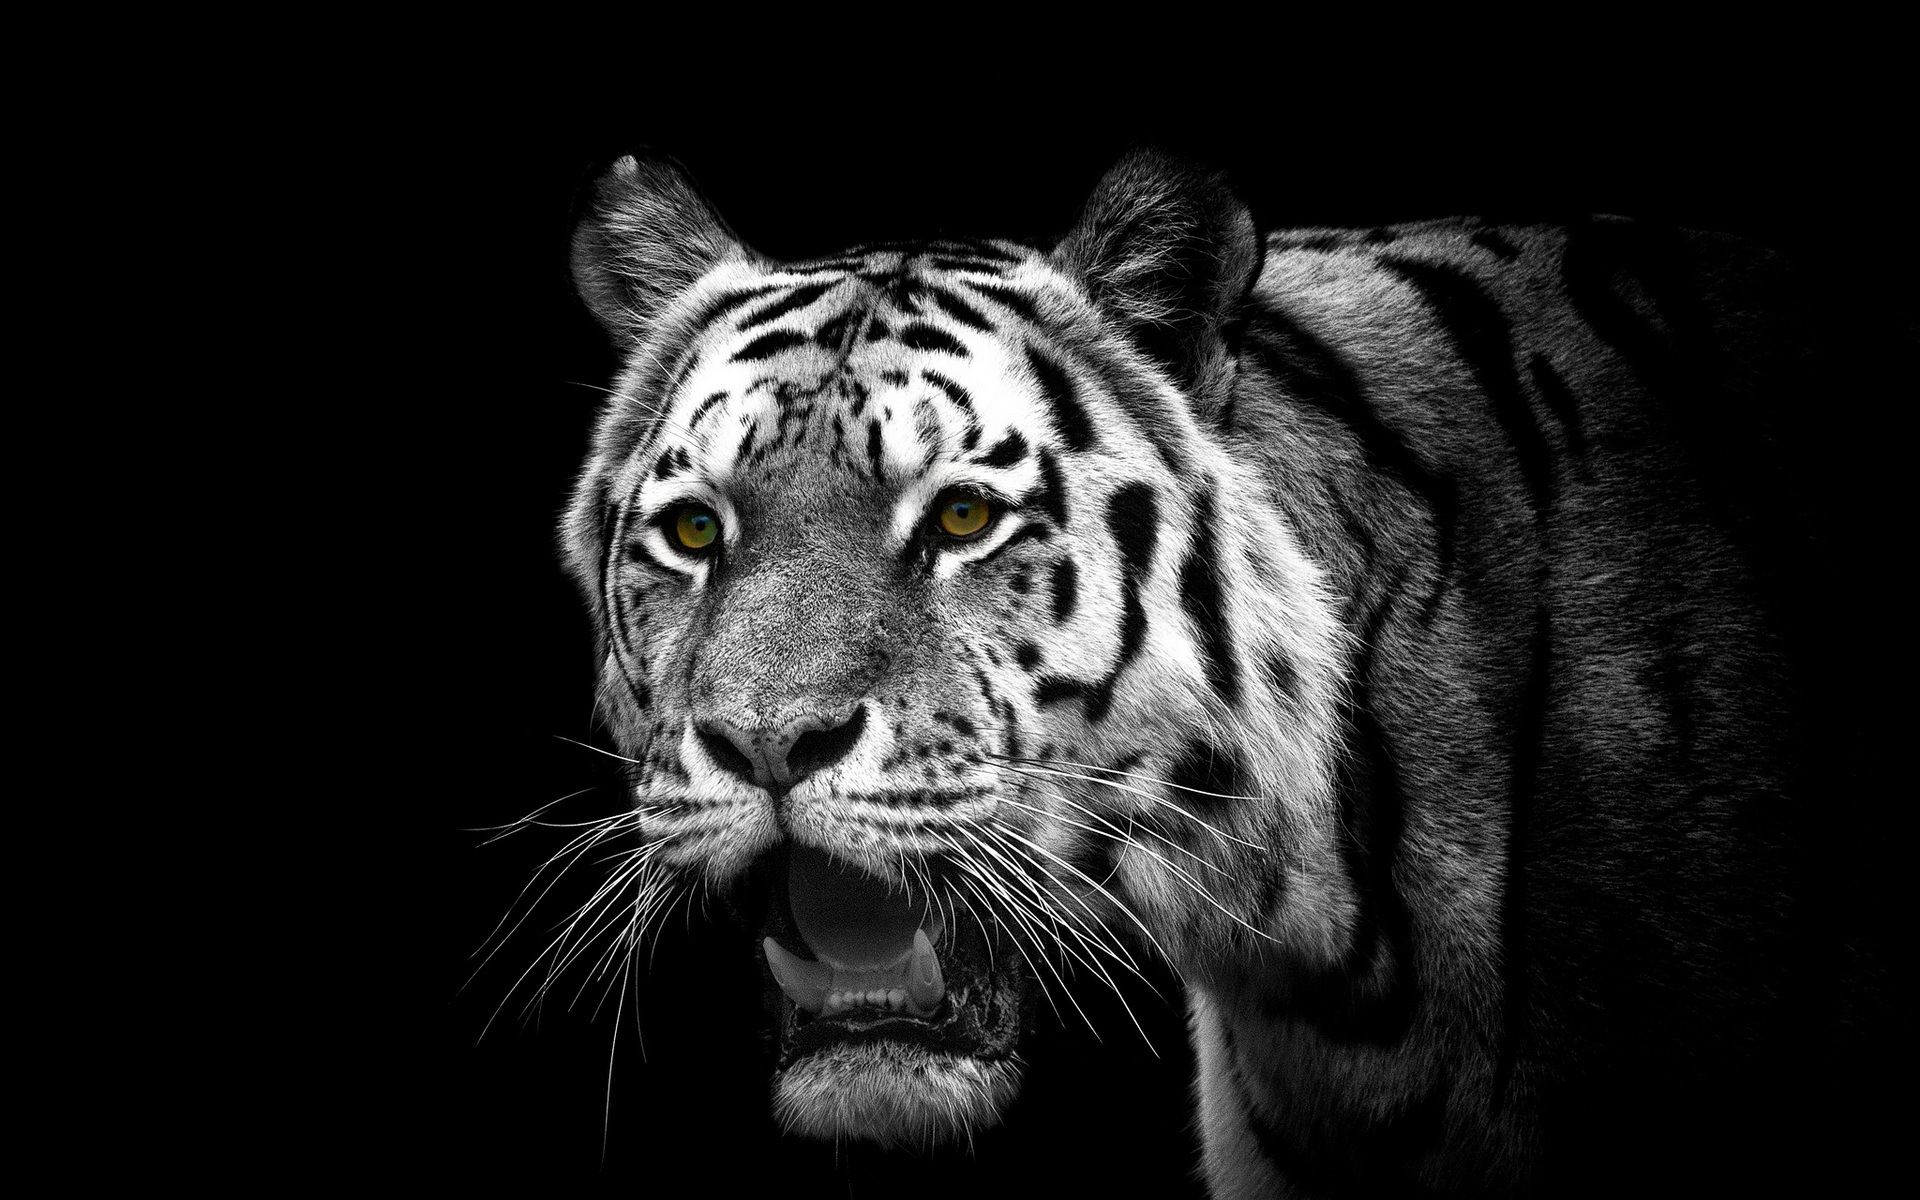 White Tiger, Free Wallpaper and Background